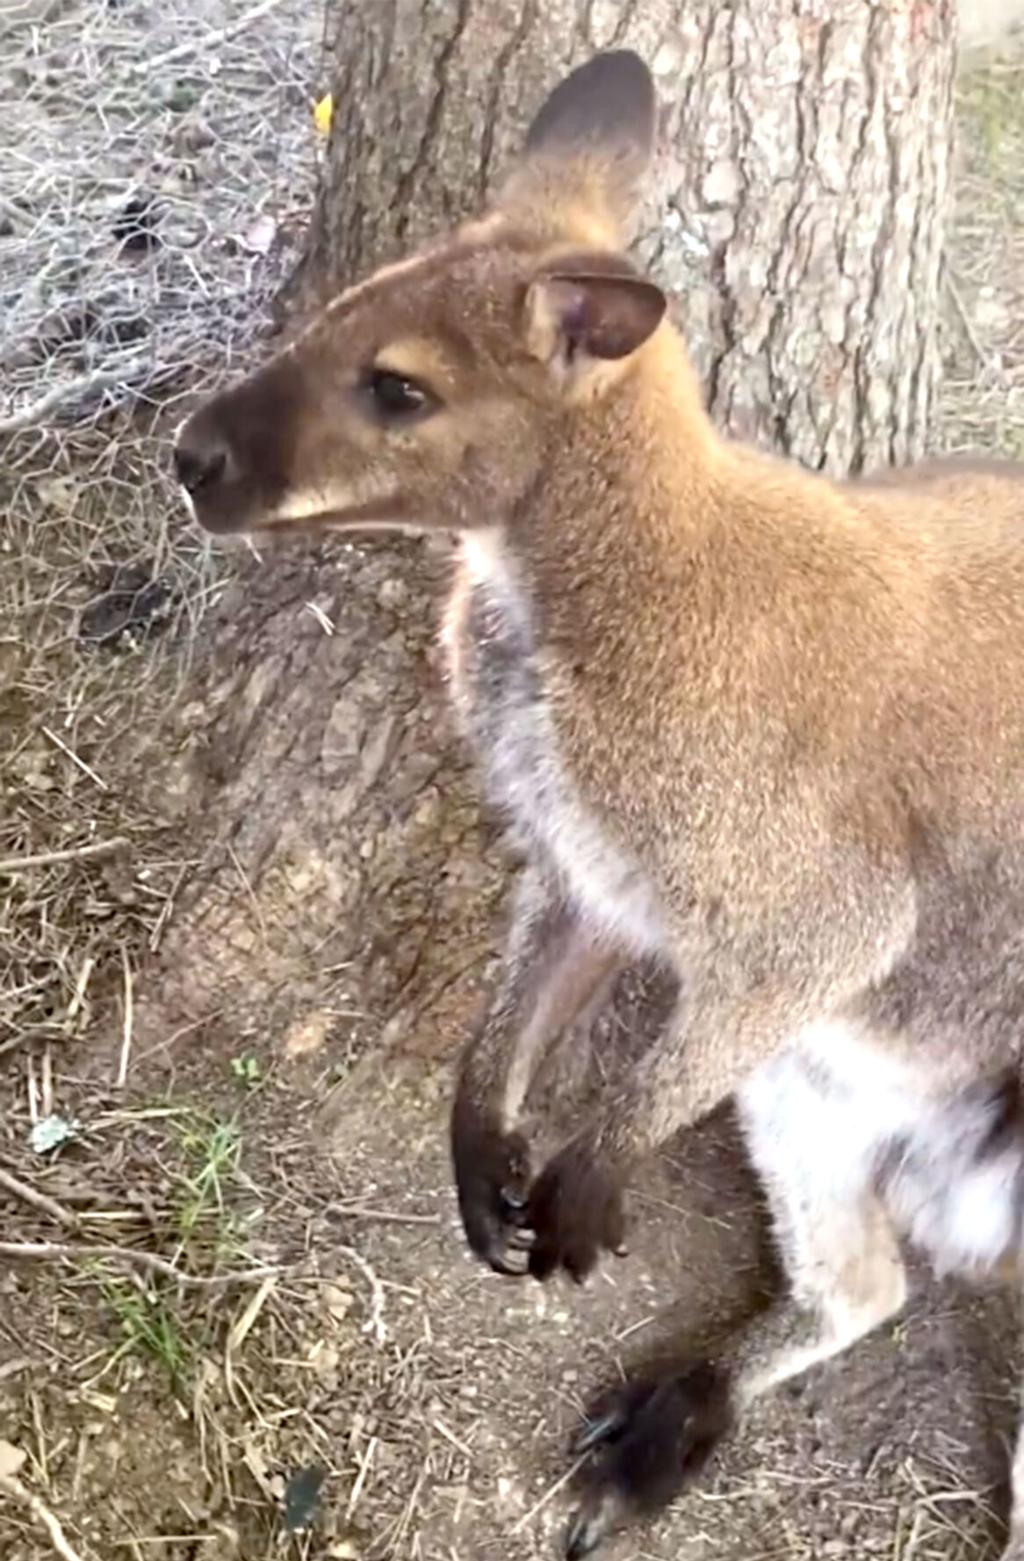 Missing Wallaby Returns Home After Search In Piney Flats Area Local News Heraldcourier Com